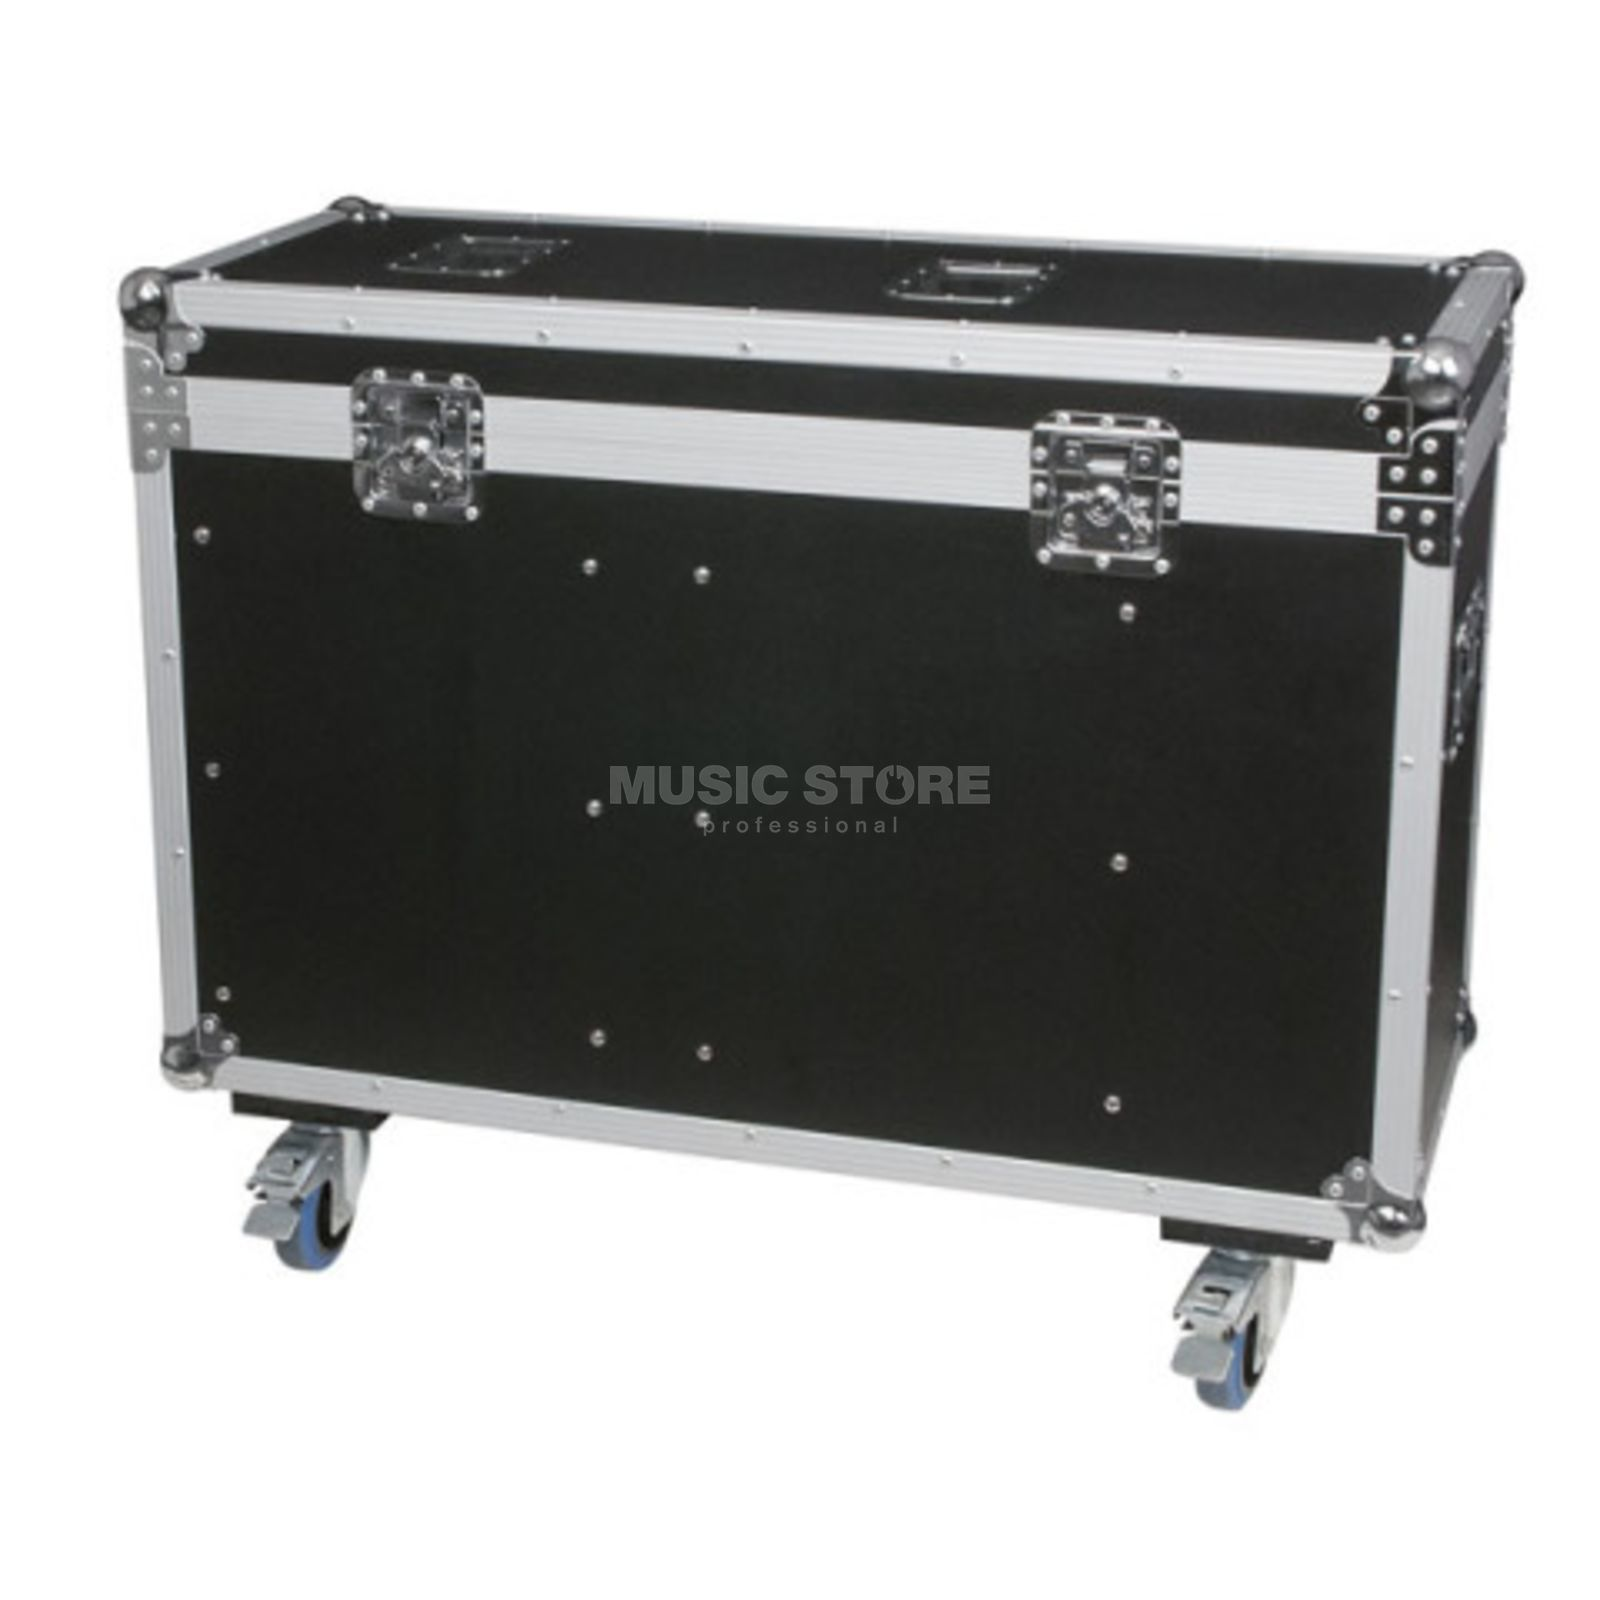 Showtec Case for 2x Phantom 140 Beam with Accessories Compartment and Wheels Produktbillede